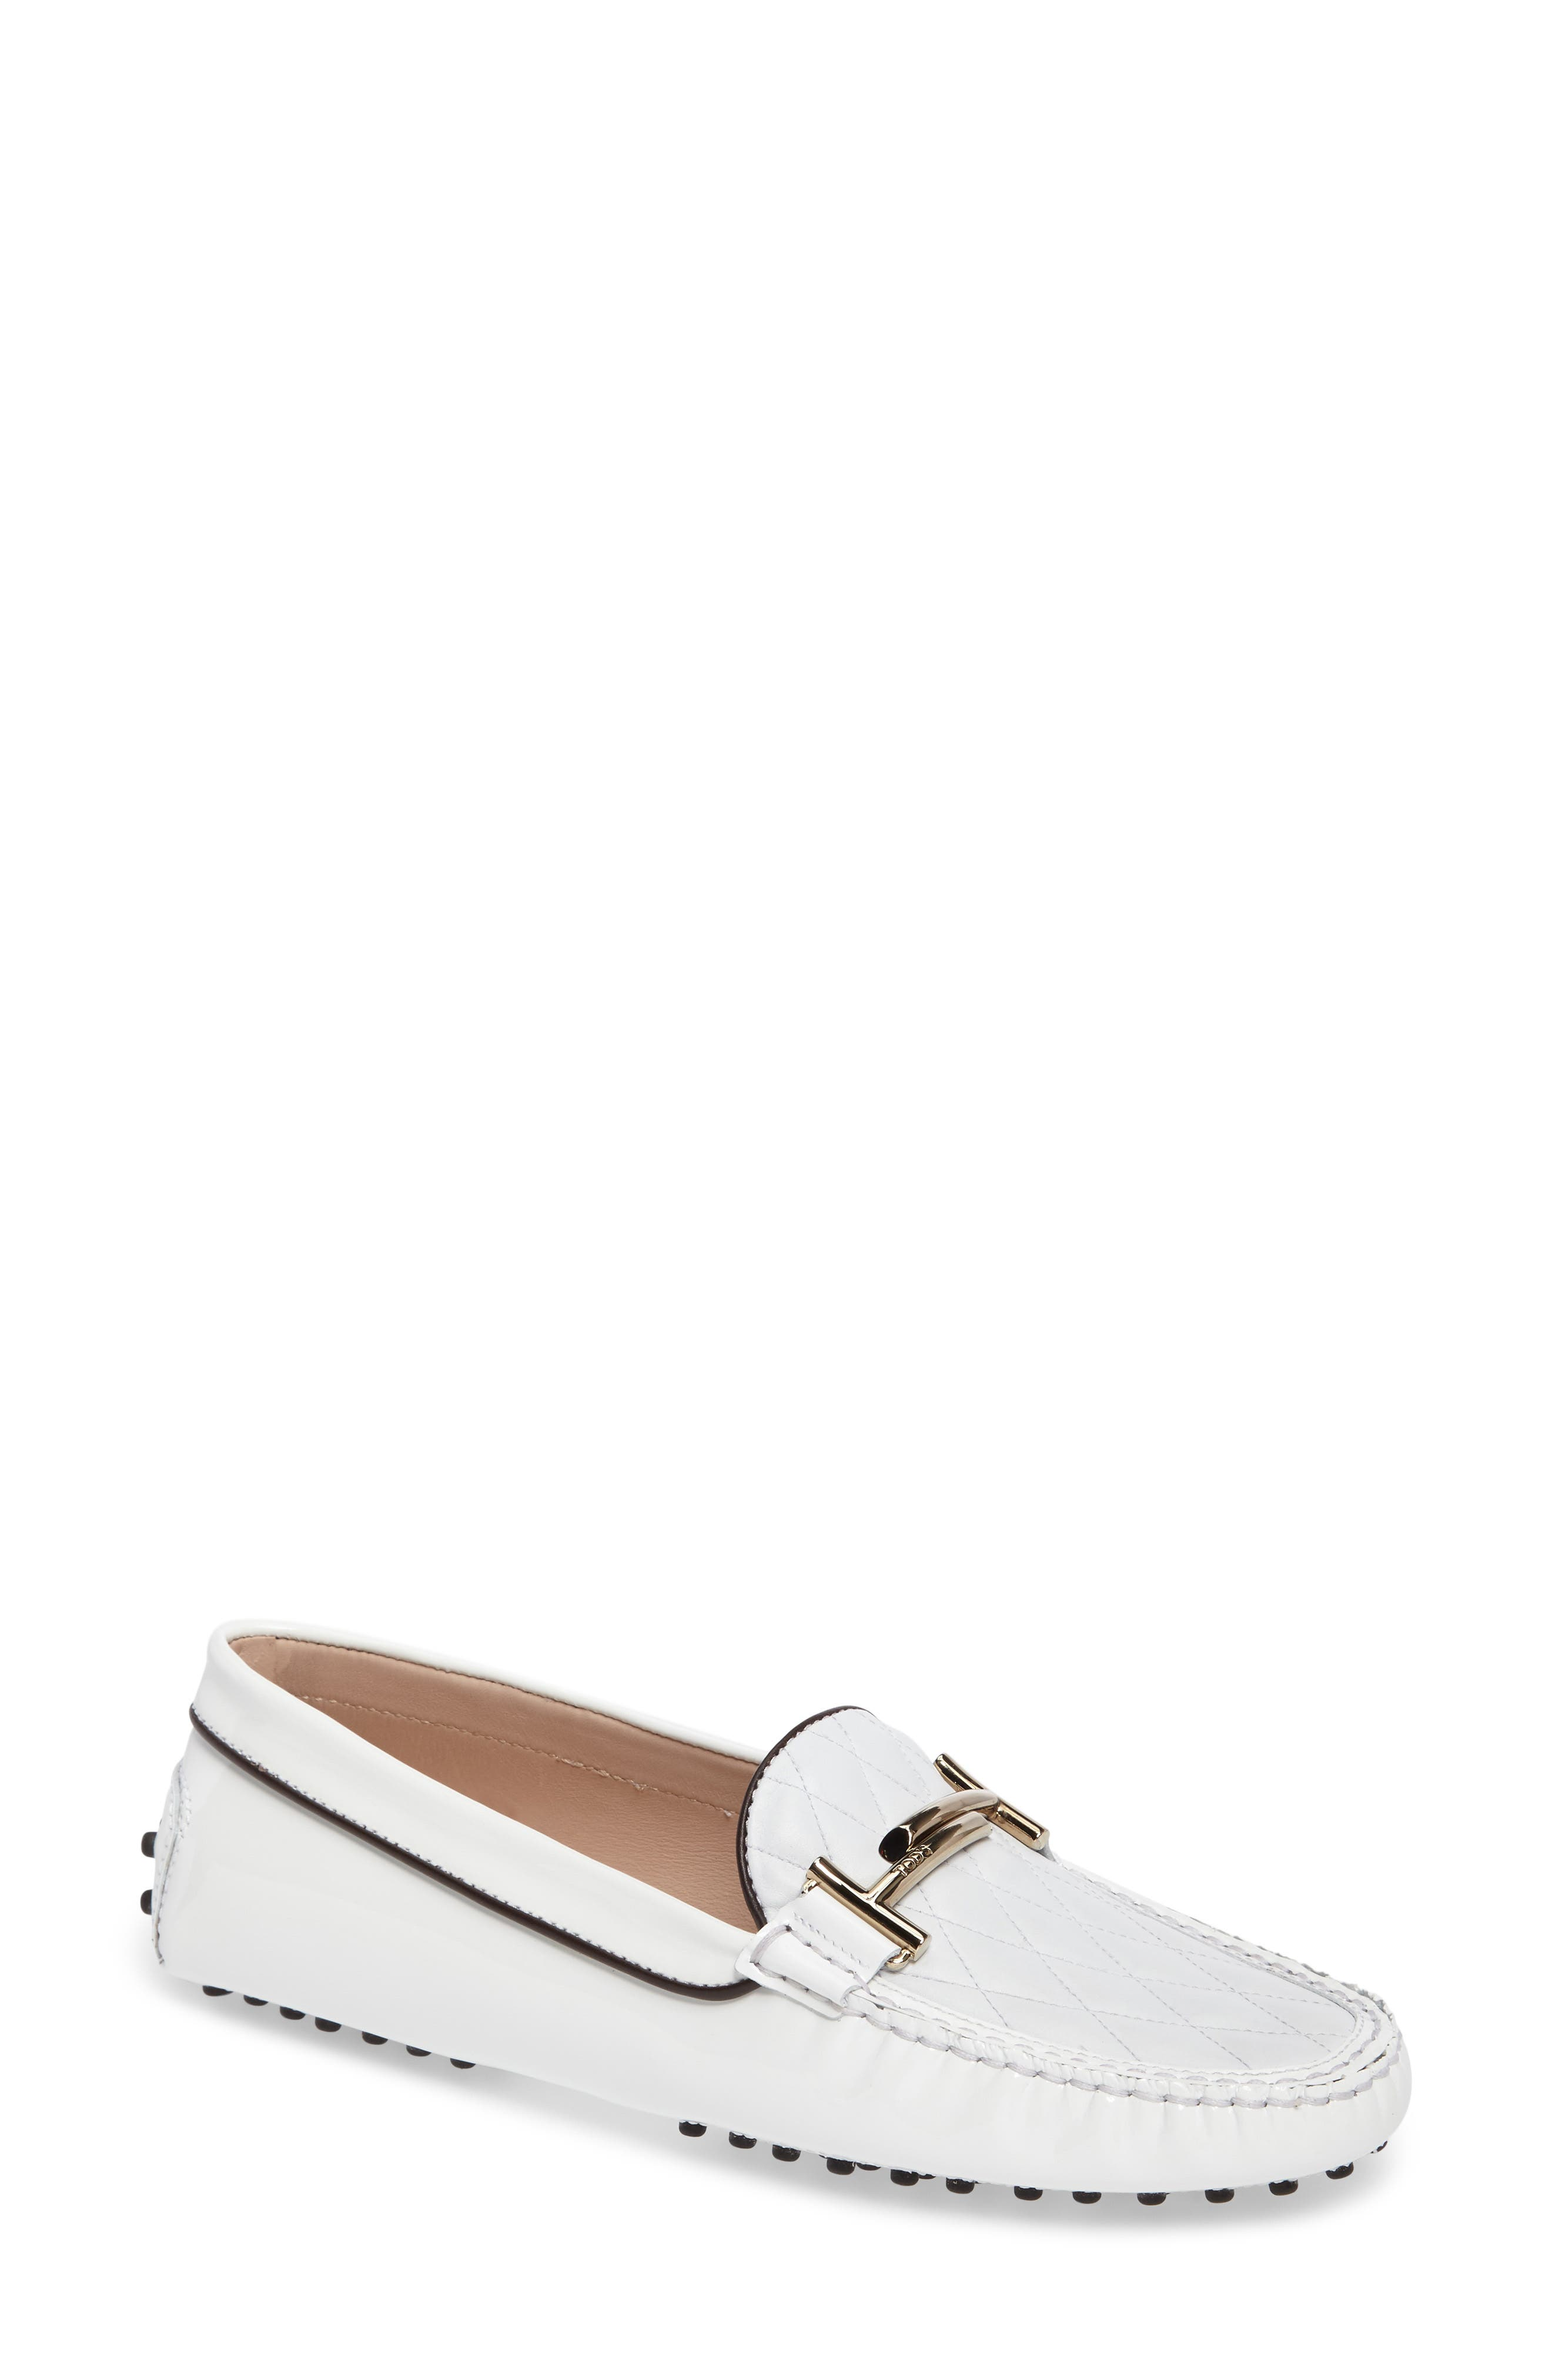 TODS Double T Quilted Gommino Loafer